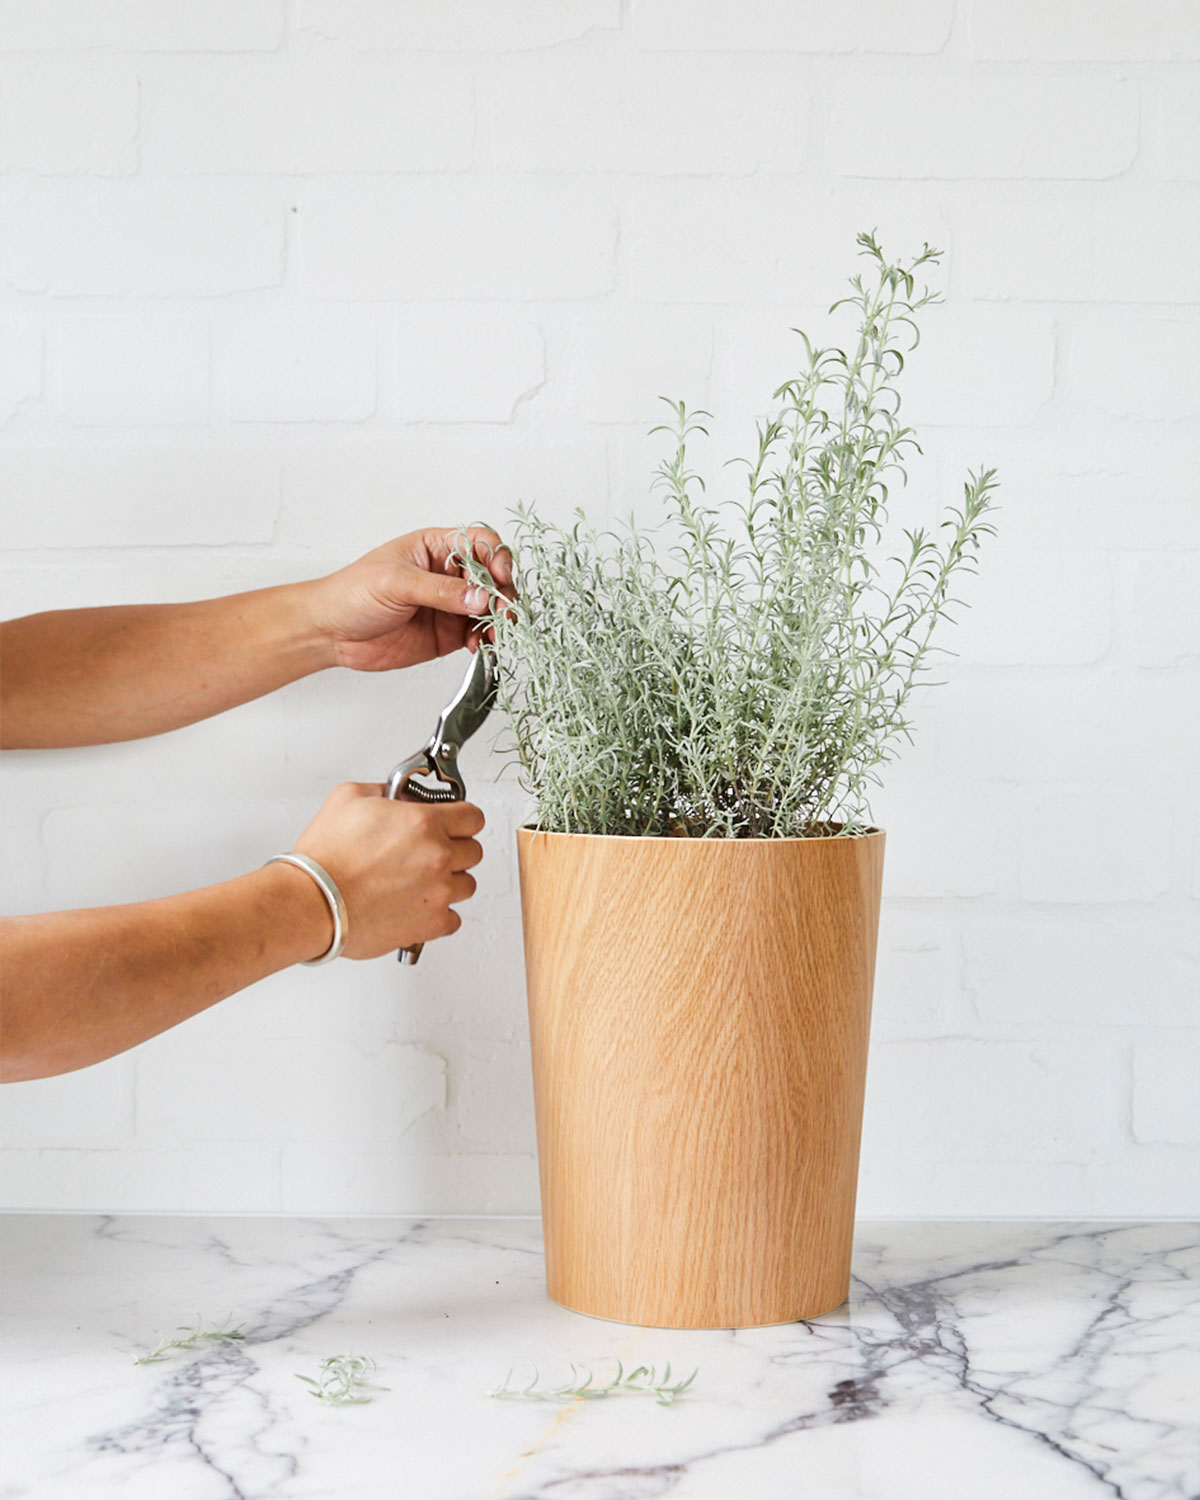 how to prune plants 2